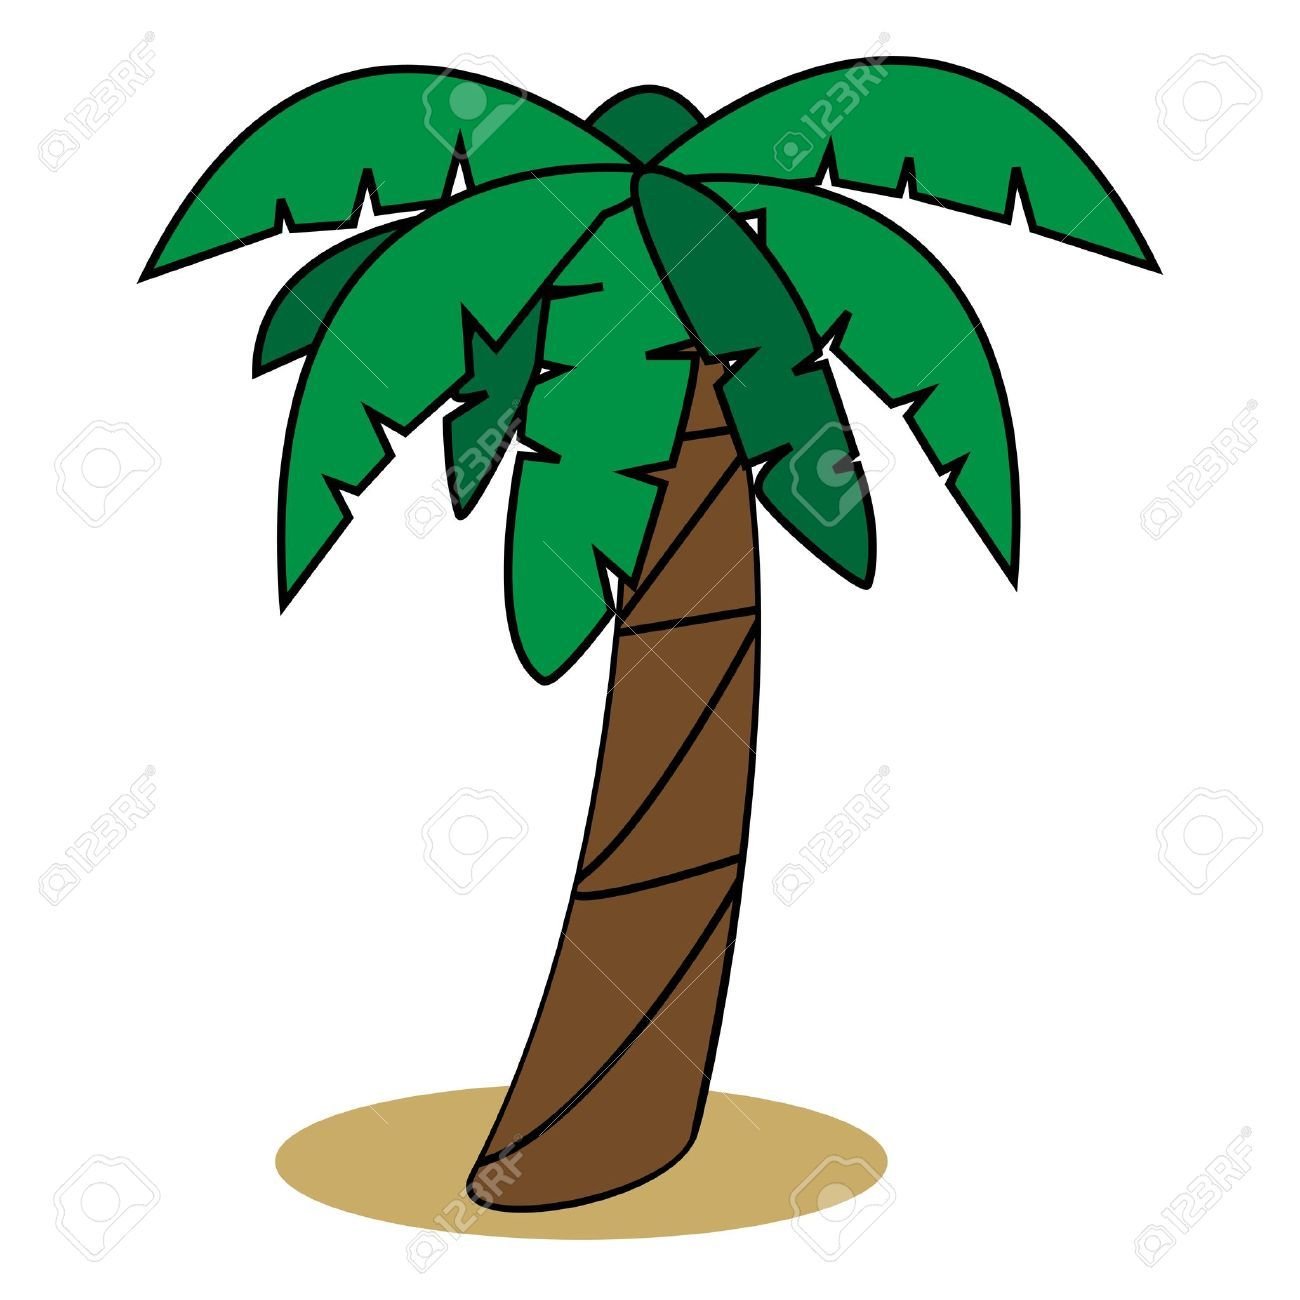 Cartoon Palm Tree Stock Photos Images, Royalty Free Cartoon Palm ...